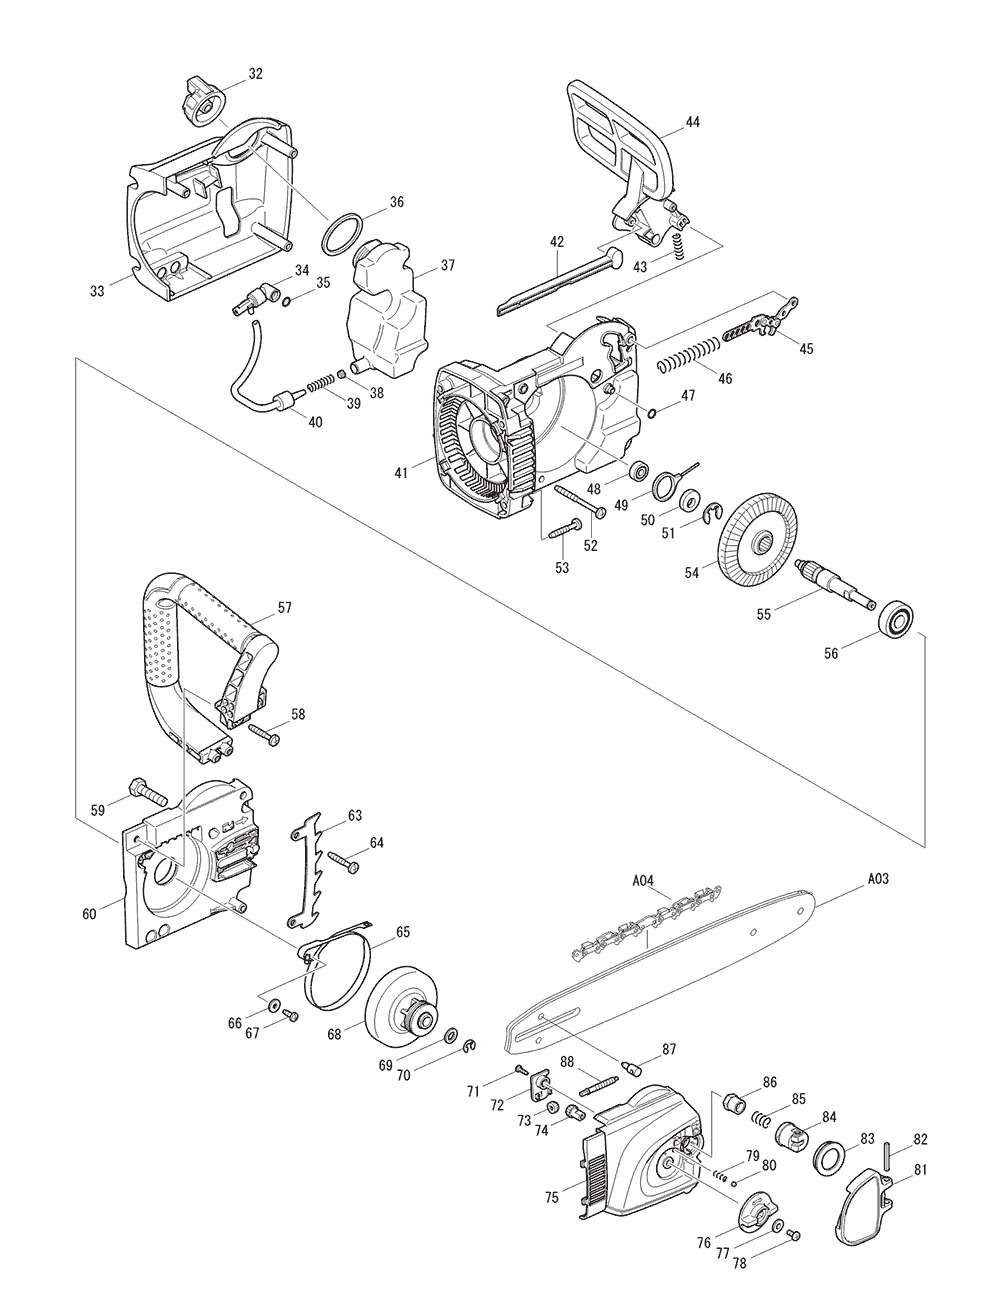 UC4030A-T2-Makita-PB-1Break Down